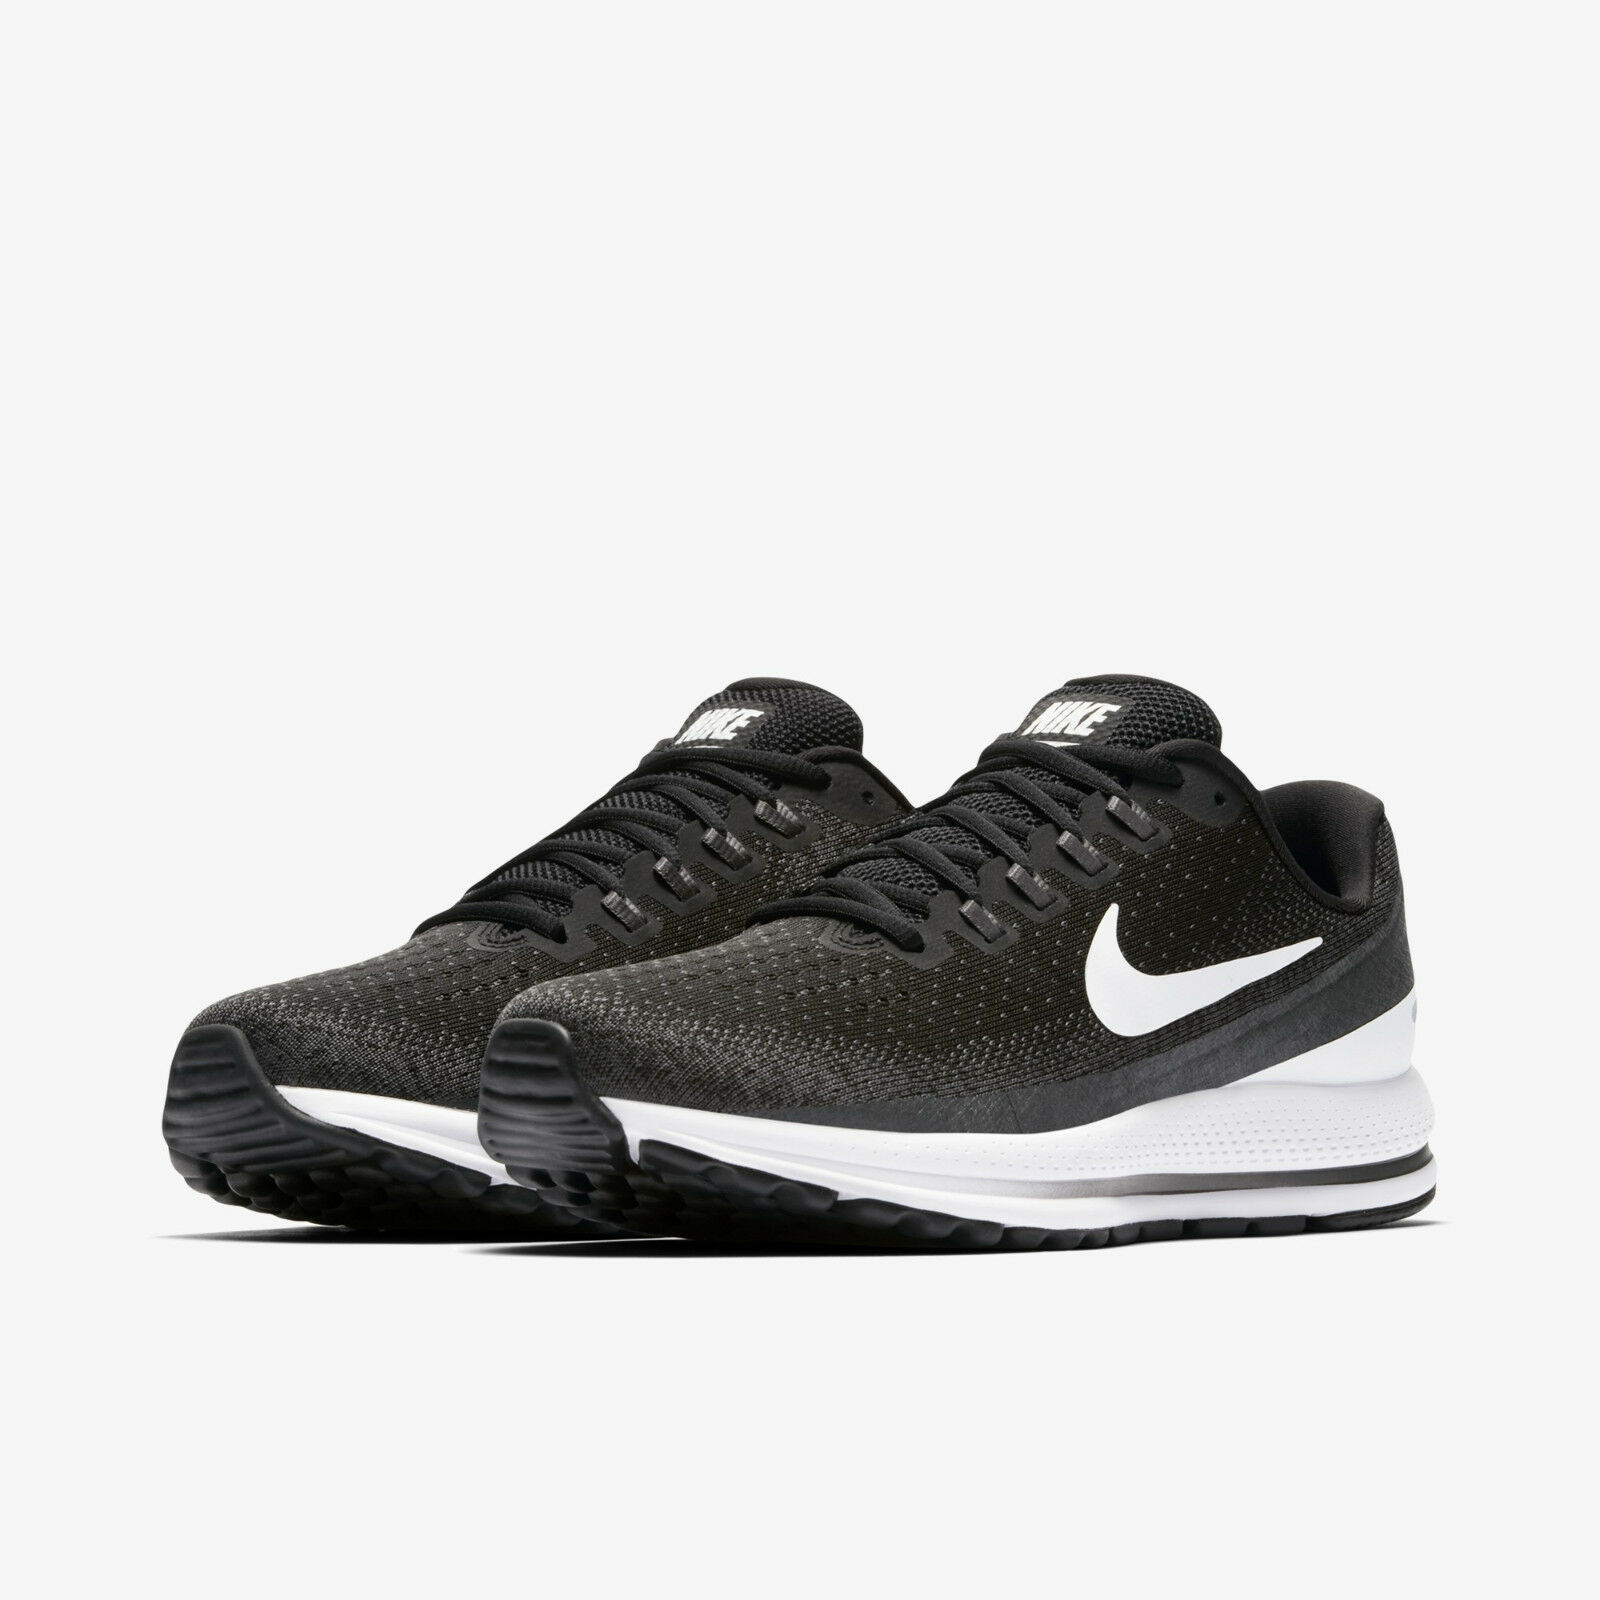 c98723262d Nike Air Zoom Vomero 13 922908-001 Black Anthracite Cool Grey Mens Running  shoes